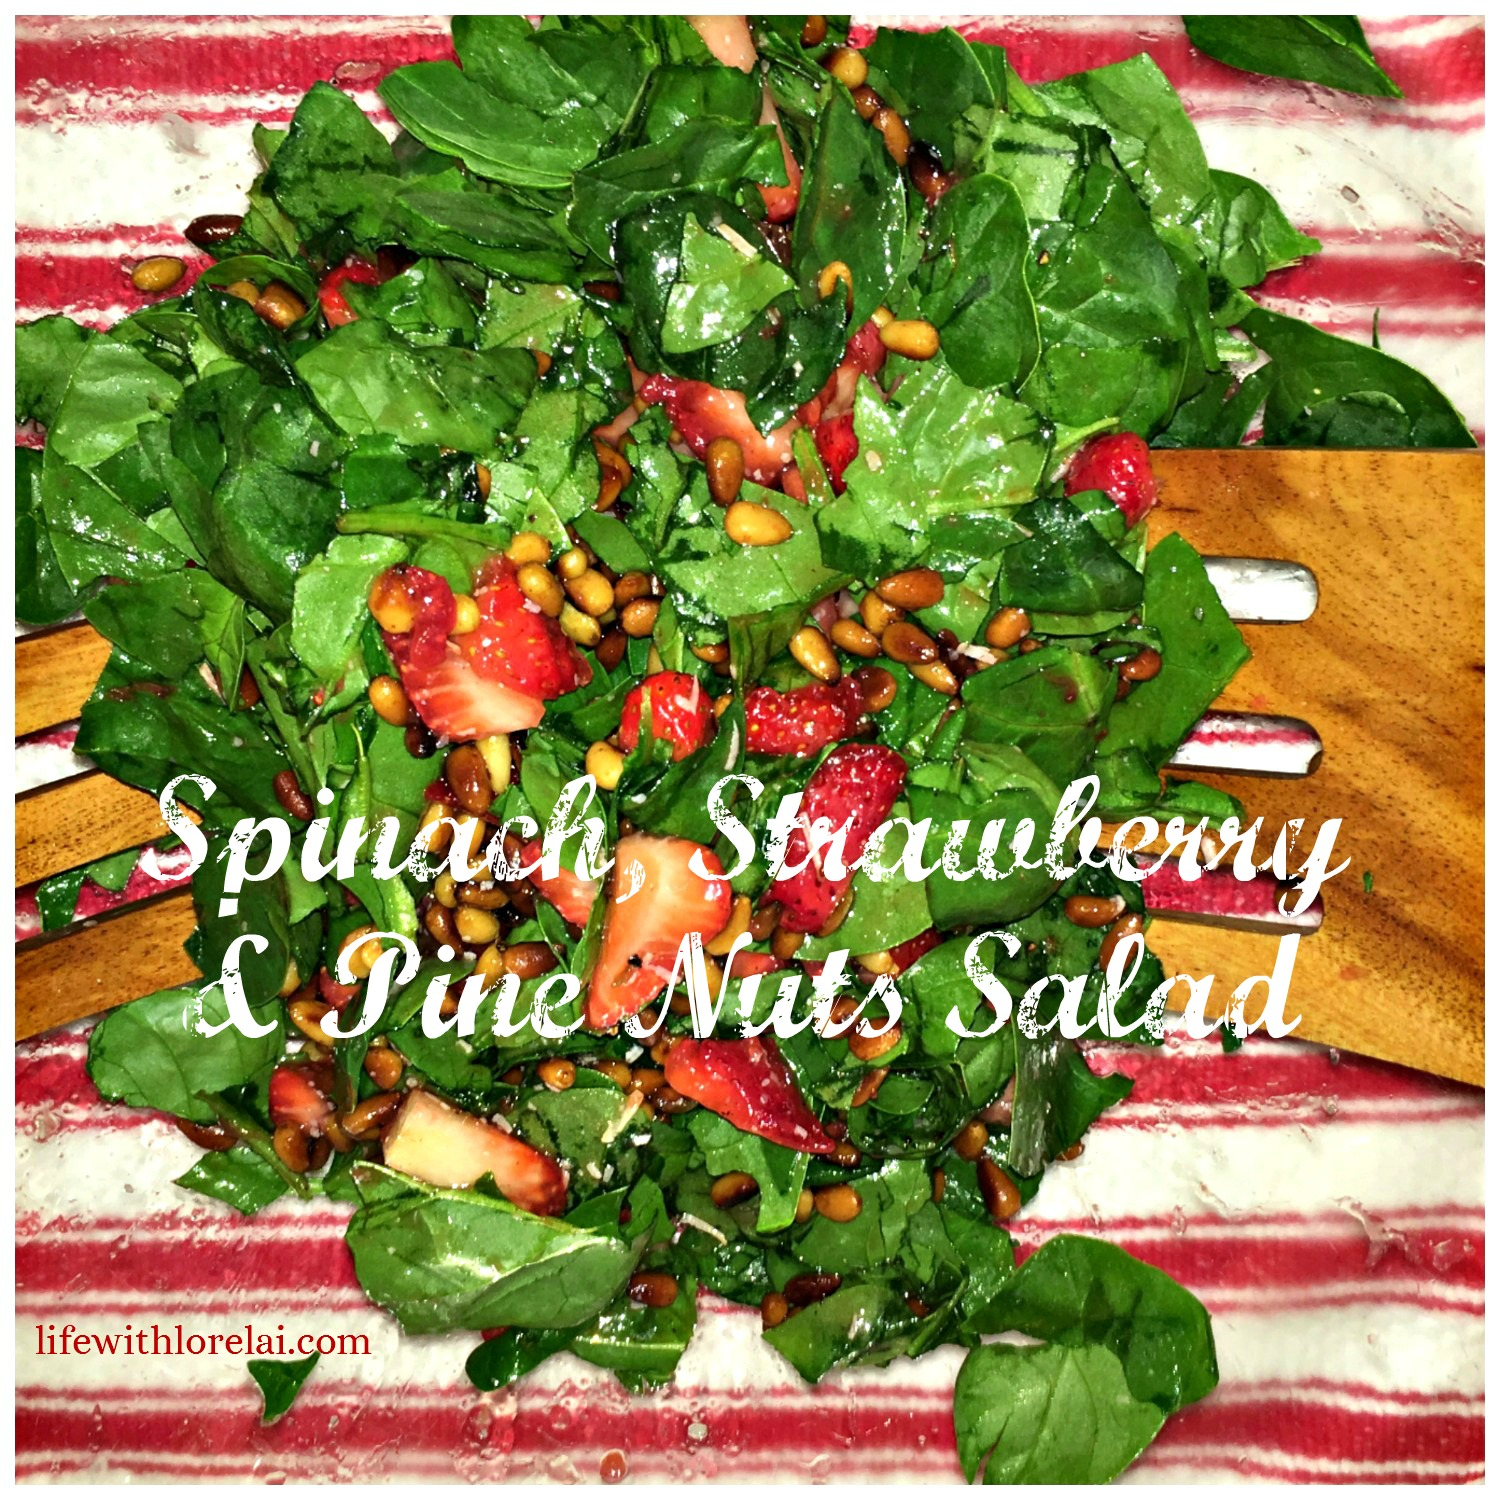 Spinach, Strawberry & Pine Nuts Salad with Strawberry-Jalapeño Vinaigrette - an easy #recipe for a delicious summer #salad. #strawberry #Vinaigrette